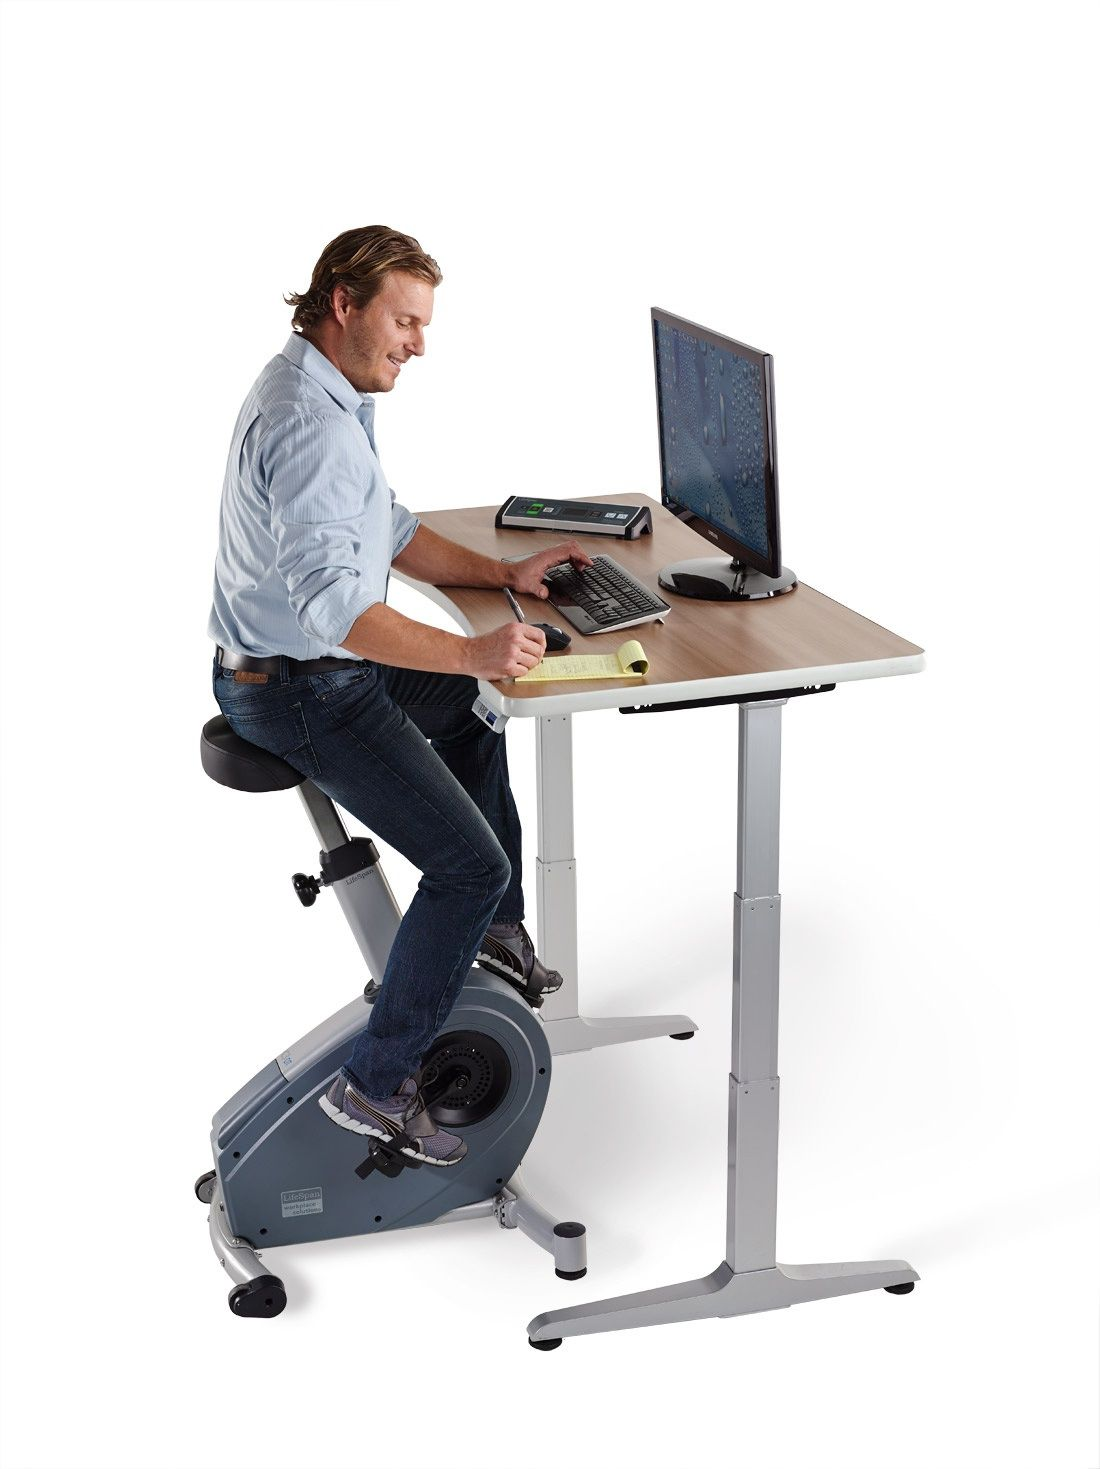 Ride Through Your Day With This Lifespan Under Desk Exercise Bike Purchase An Office Cycle To Pedal Workday Now At Officechairsusa